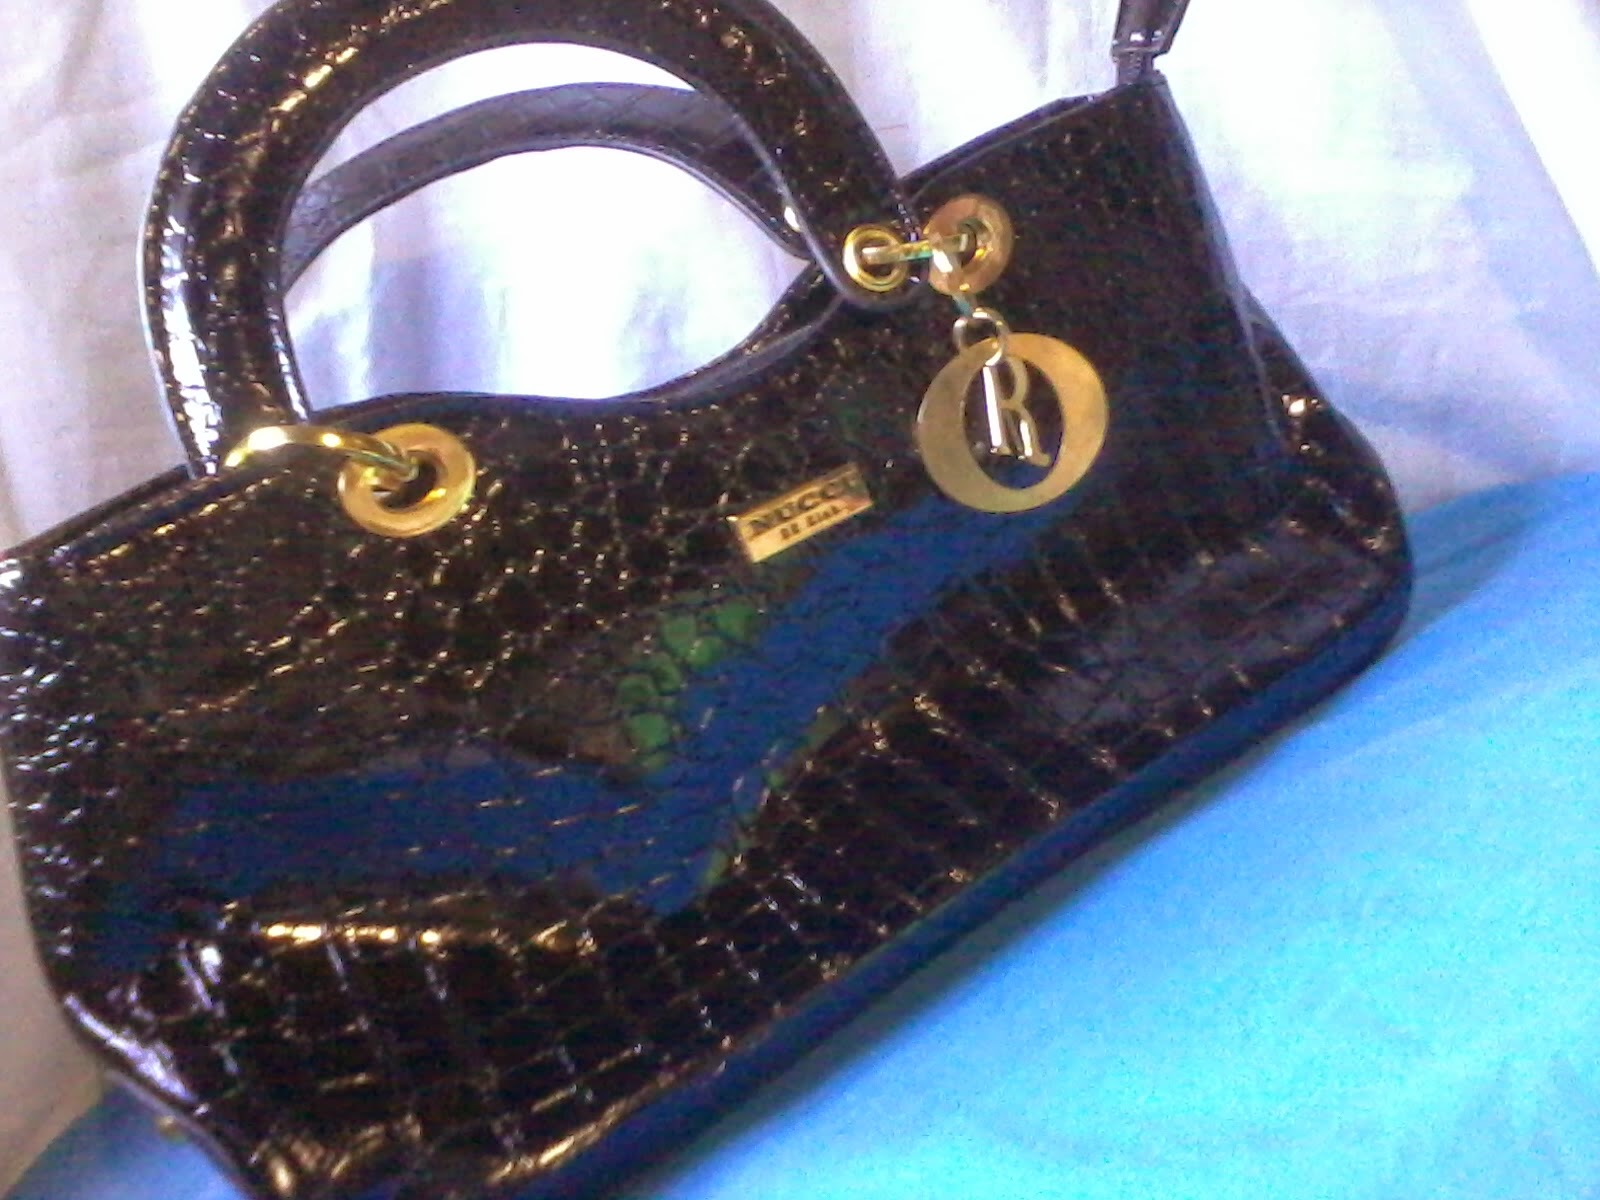 leather bag, beg kulit, beg tangan, beg cantik, beg hitam